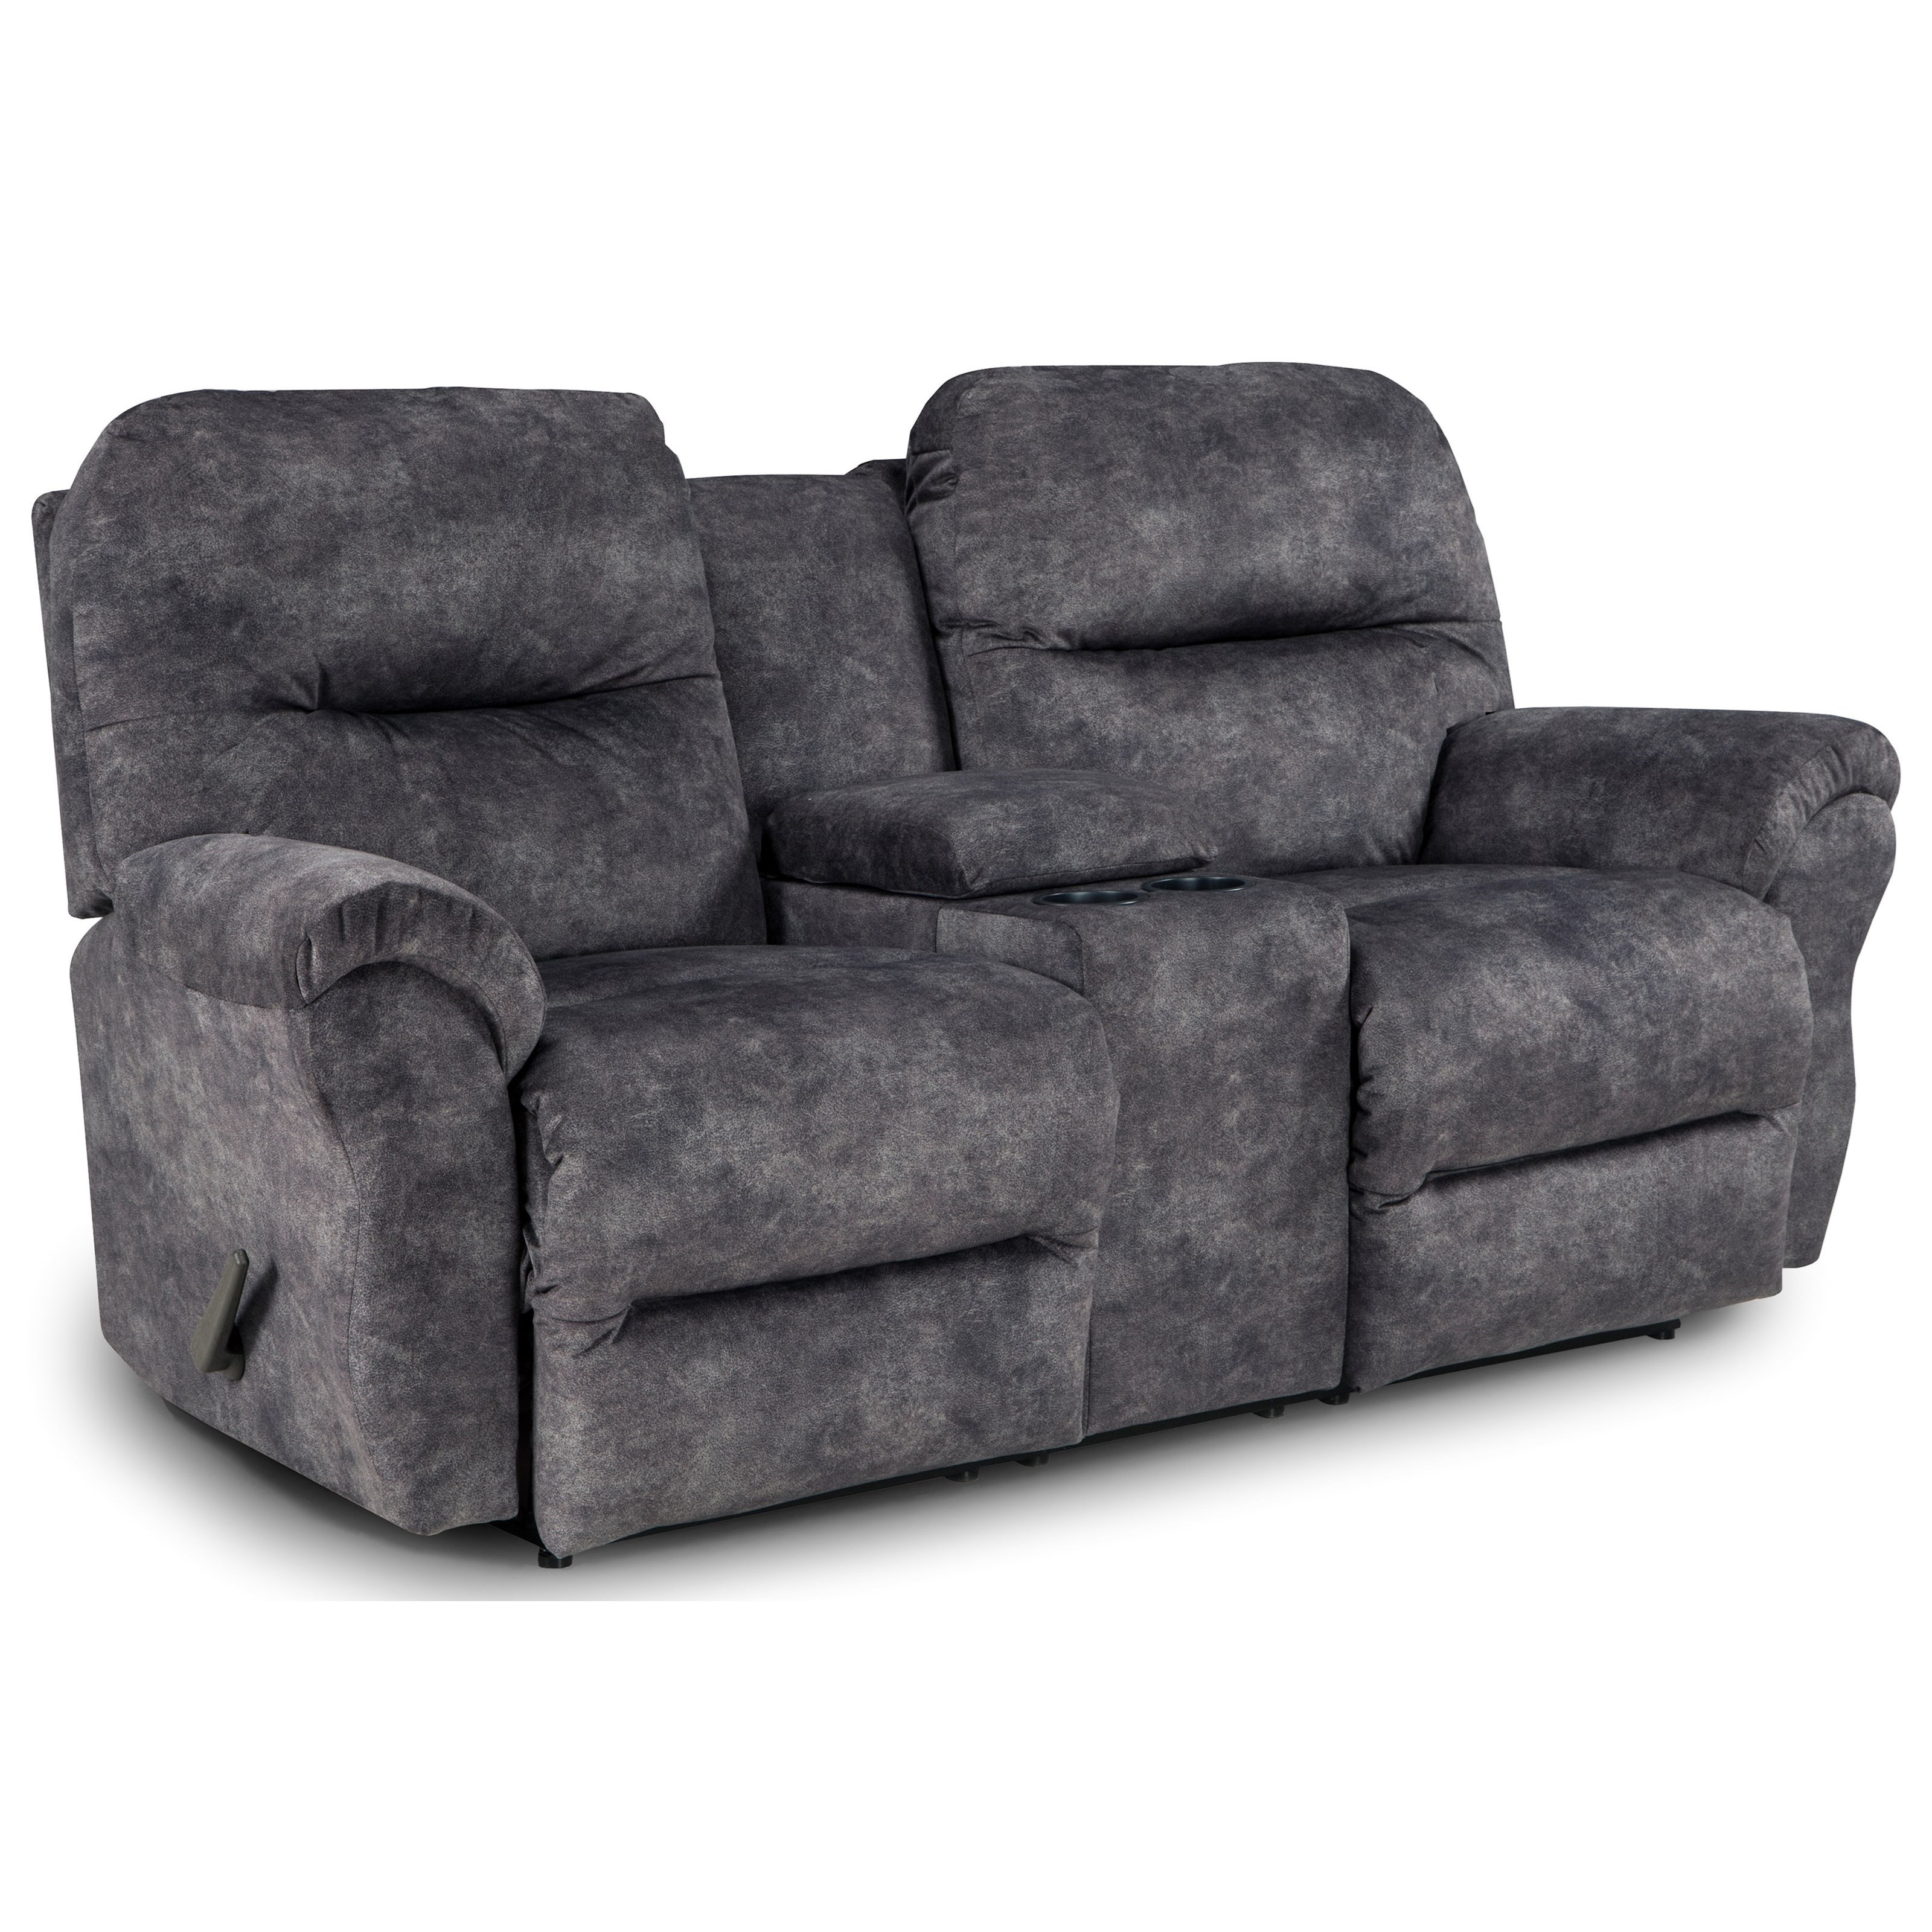 Picture of: Best Home Furnishings Bodie Rocking Reclining Loveseat With Storage Console Wayside Furniture Reclining Loveseats